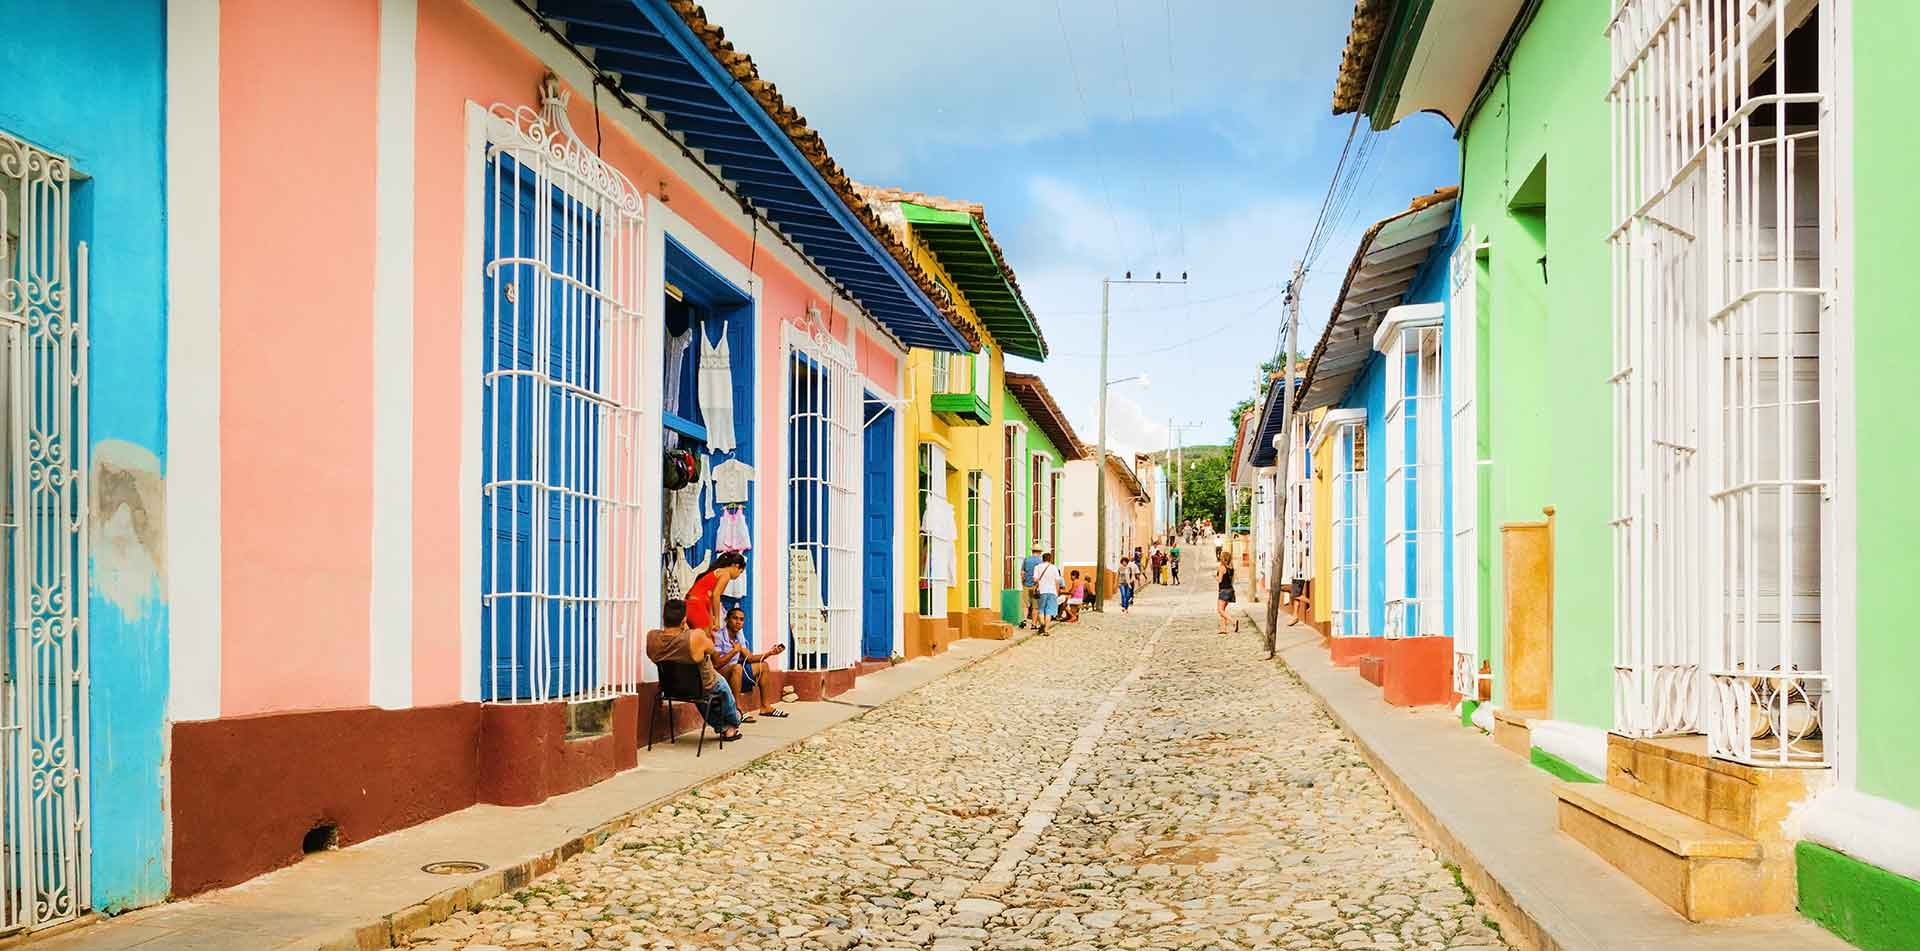 North America Caribbean Cuba Trinidad local old city colorful vibrant pastel street buildings - luxury vacation destinations